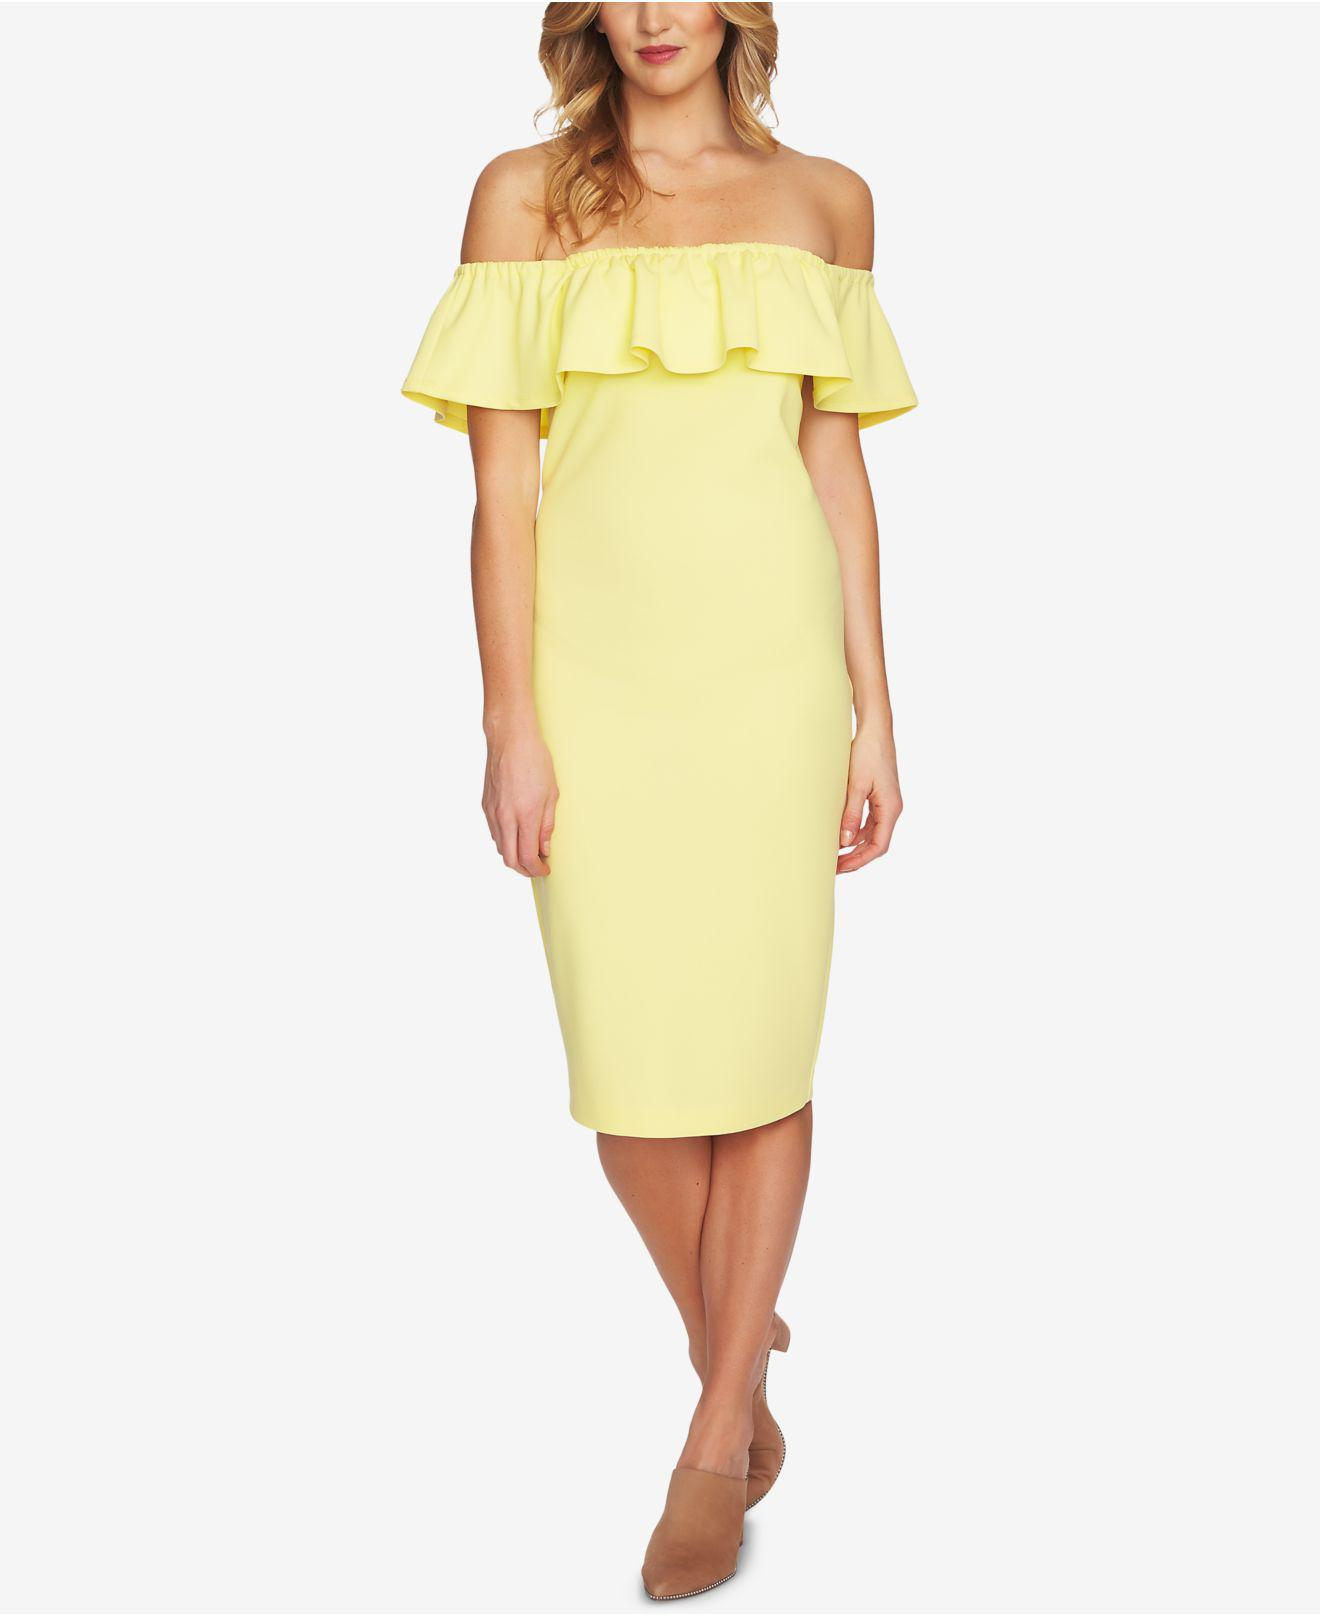 ce8b8ef52a28 Gallery. Previously sold at  Macy s · Women s Off The Shoulder Dresses ...